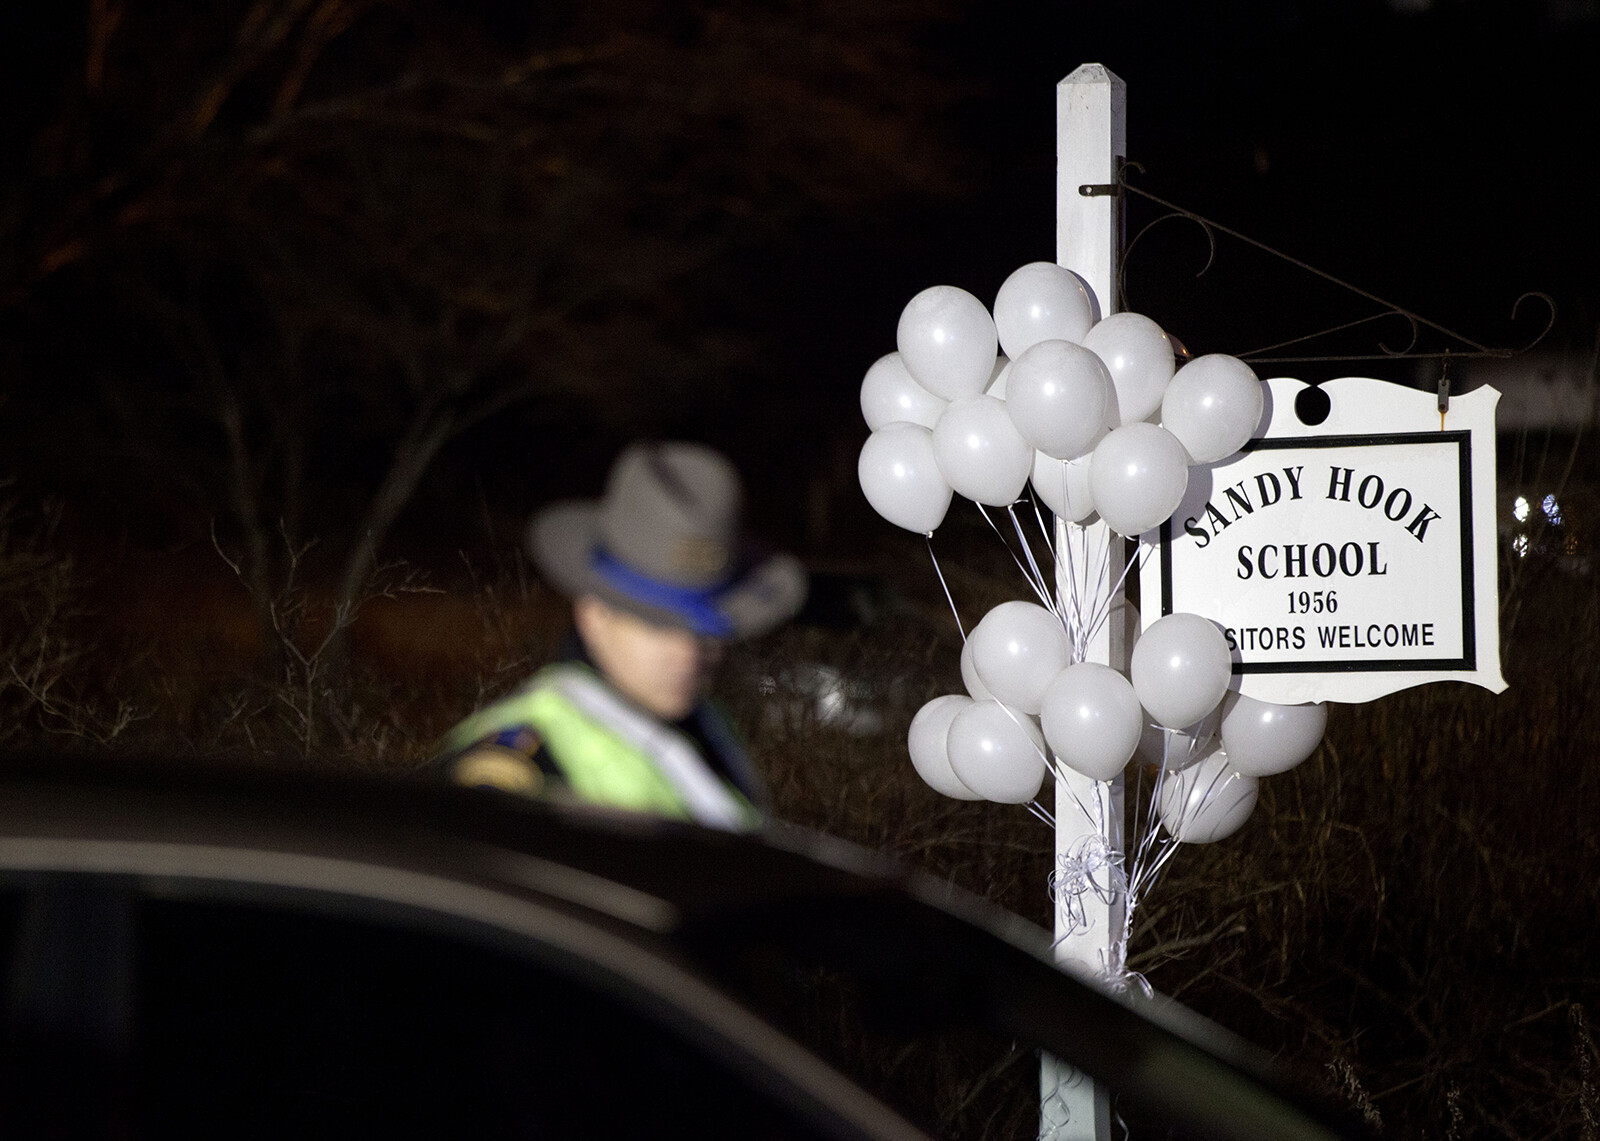 Remington offers $33 million settlement with Sandy Hook school shooting victims' families